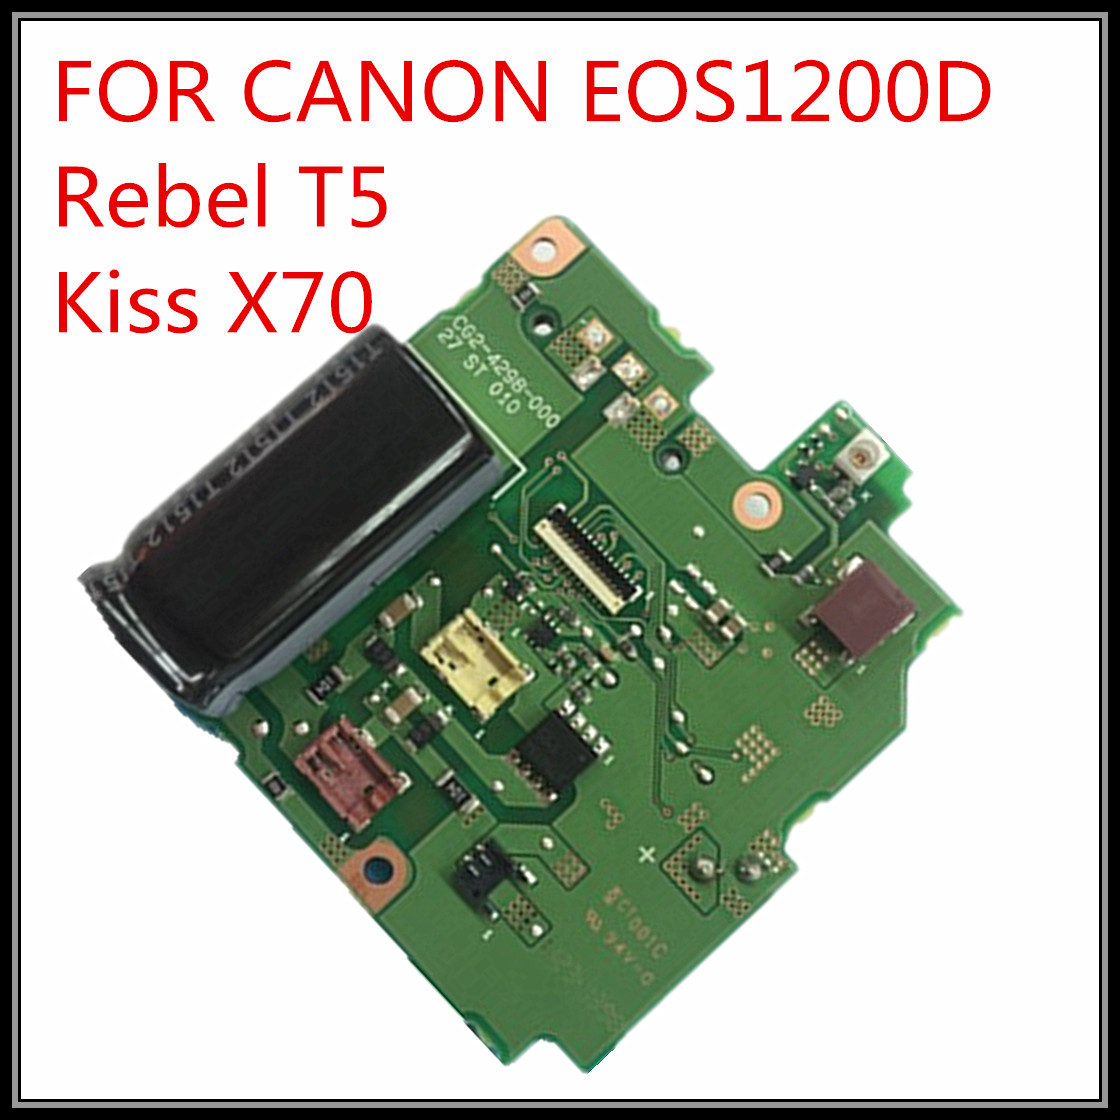 Free Shipping! ! 100% original For Canon EOS 1200D Rebel T5 Kiss X70 DC/DC Power Board Flash Board